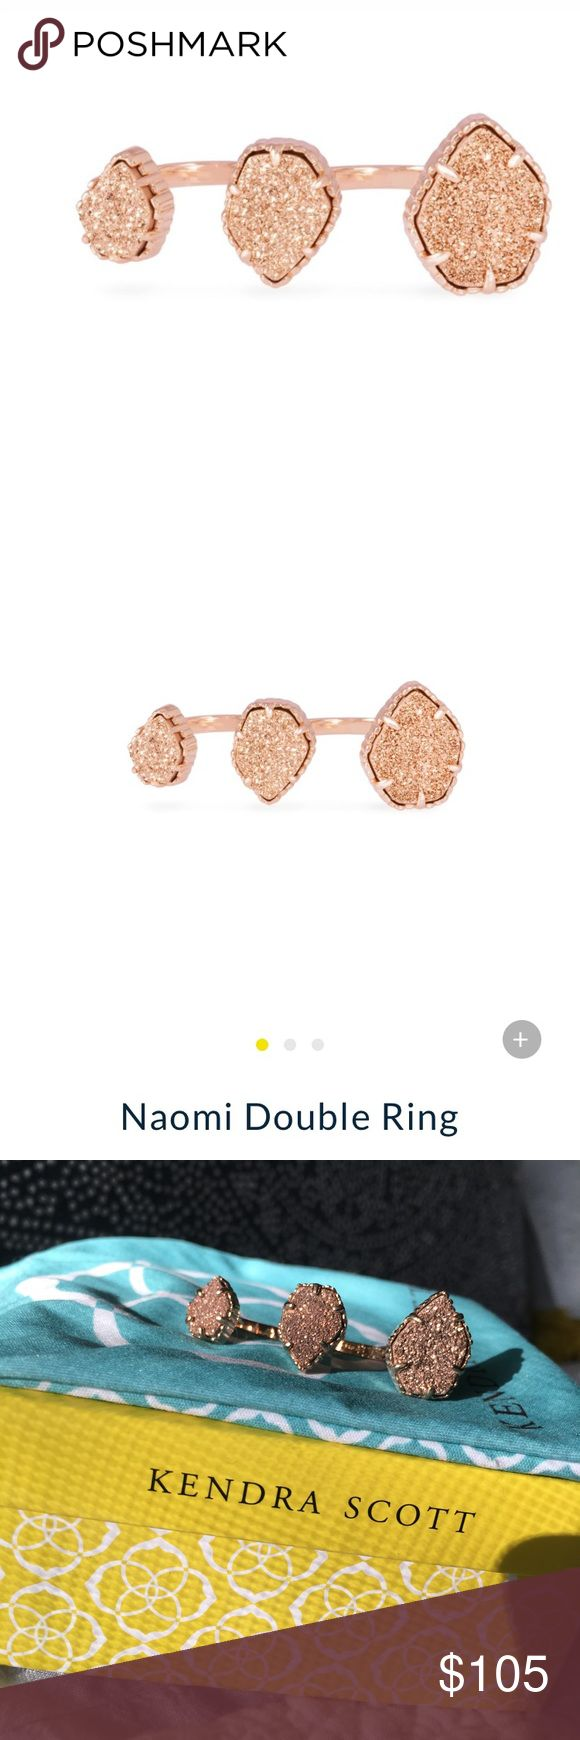 Kendra Scott Naomi Double Ring - Rose Gold Sparkle and shine 🌟 Double ring in rose gold druzy by Kendra Scott. Box & jewelry bag included. This ring is gorgeous, unique, and barely worn. Kendra Scott Jewelry Rings